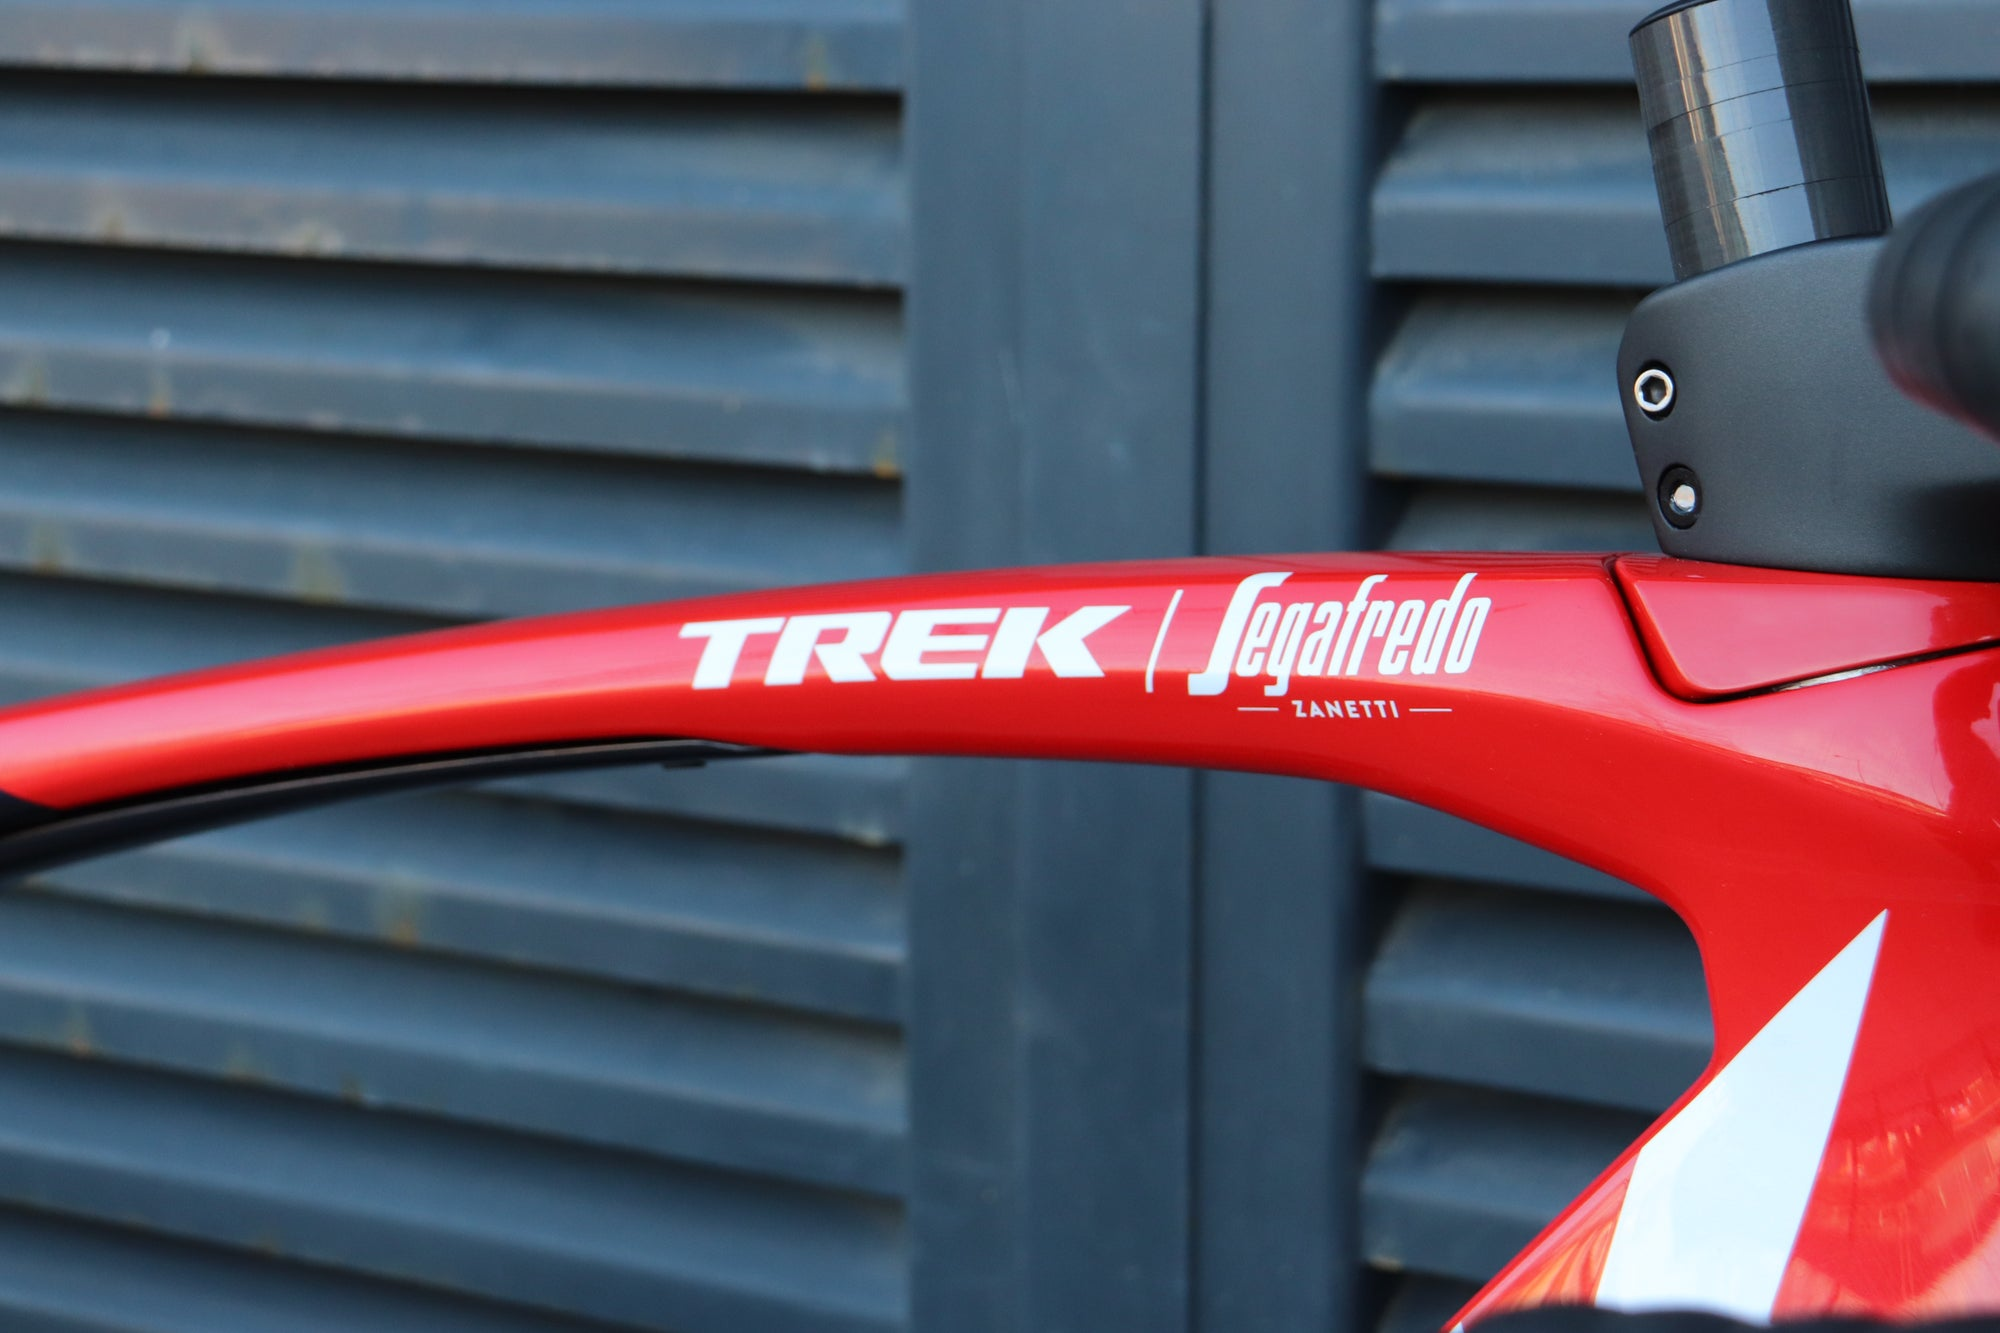 Trek Madone, Emonda, Domane - Whats The Difference Anyway?